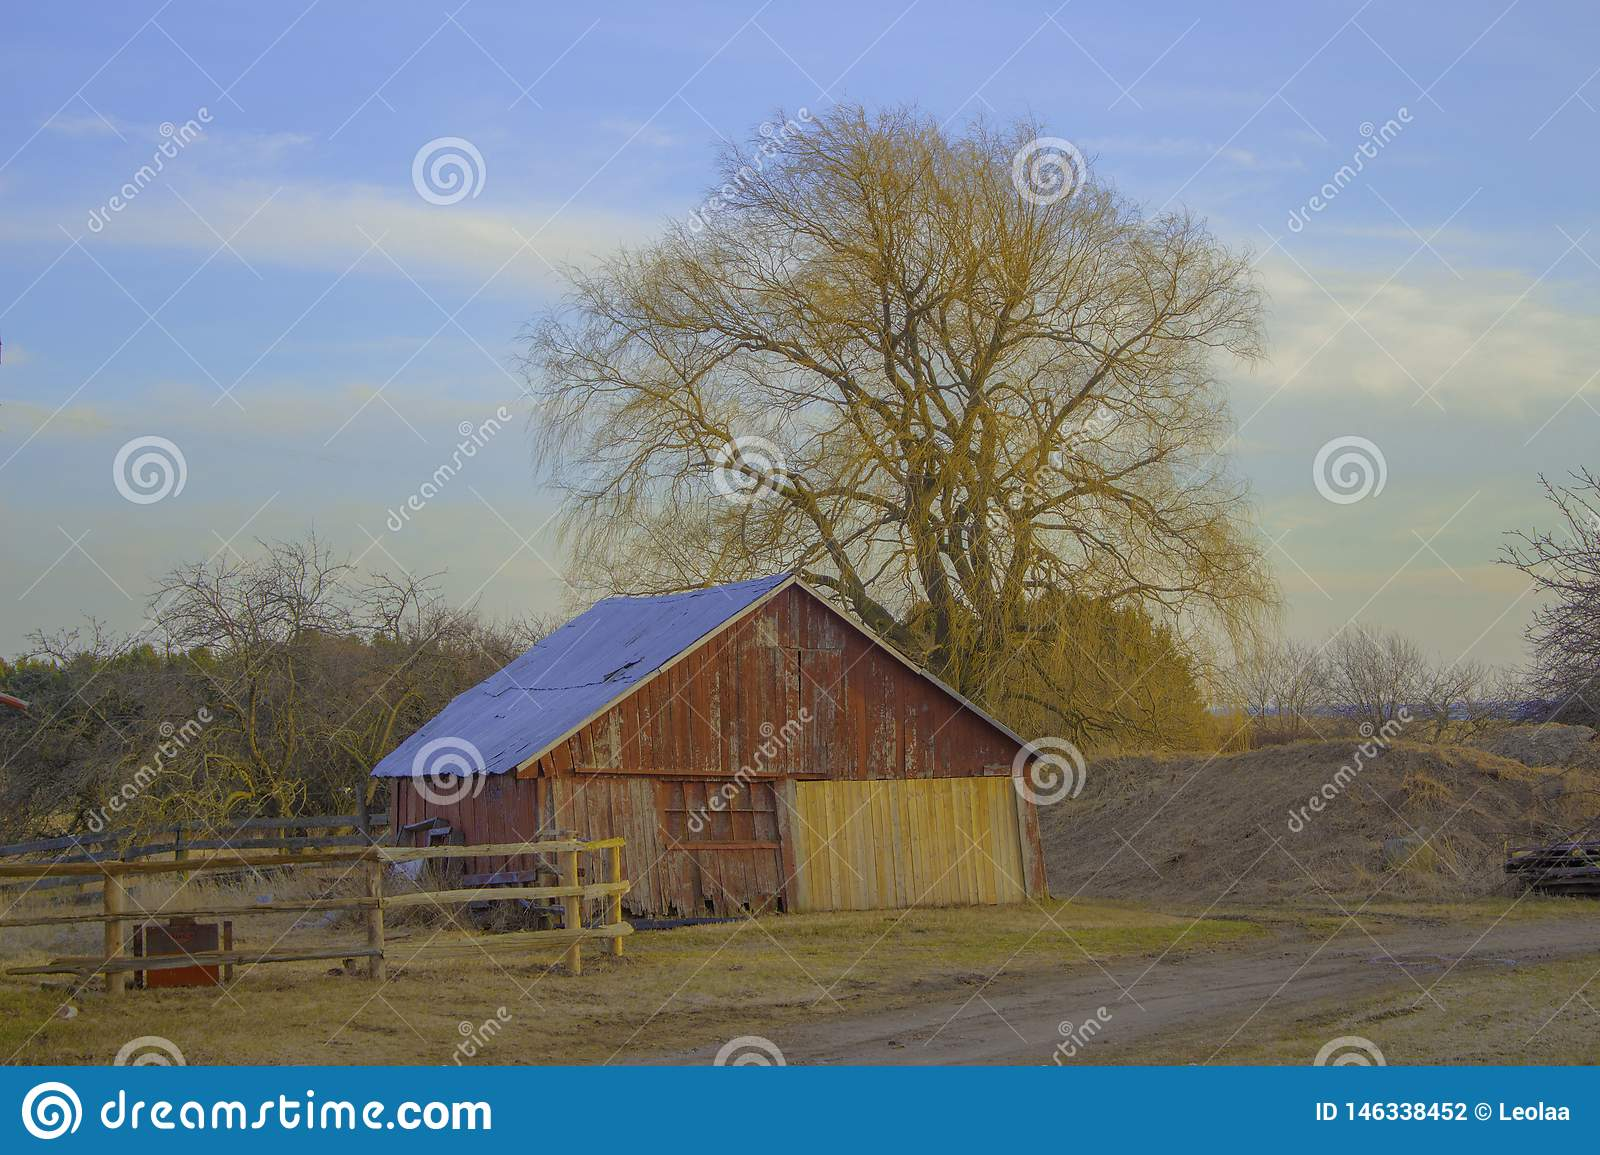 A Shed In A Farmer`s Field